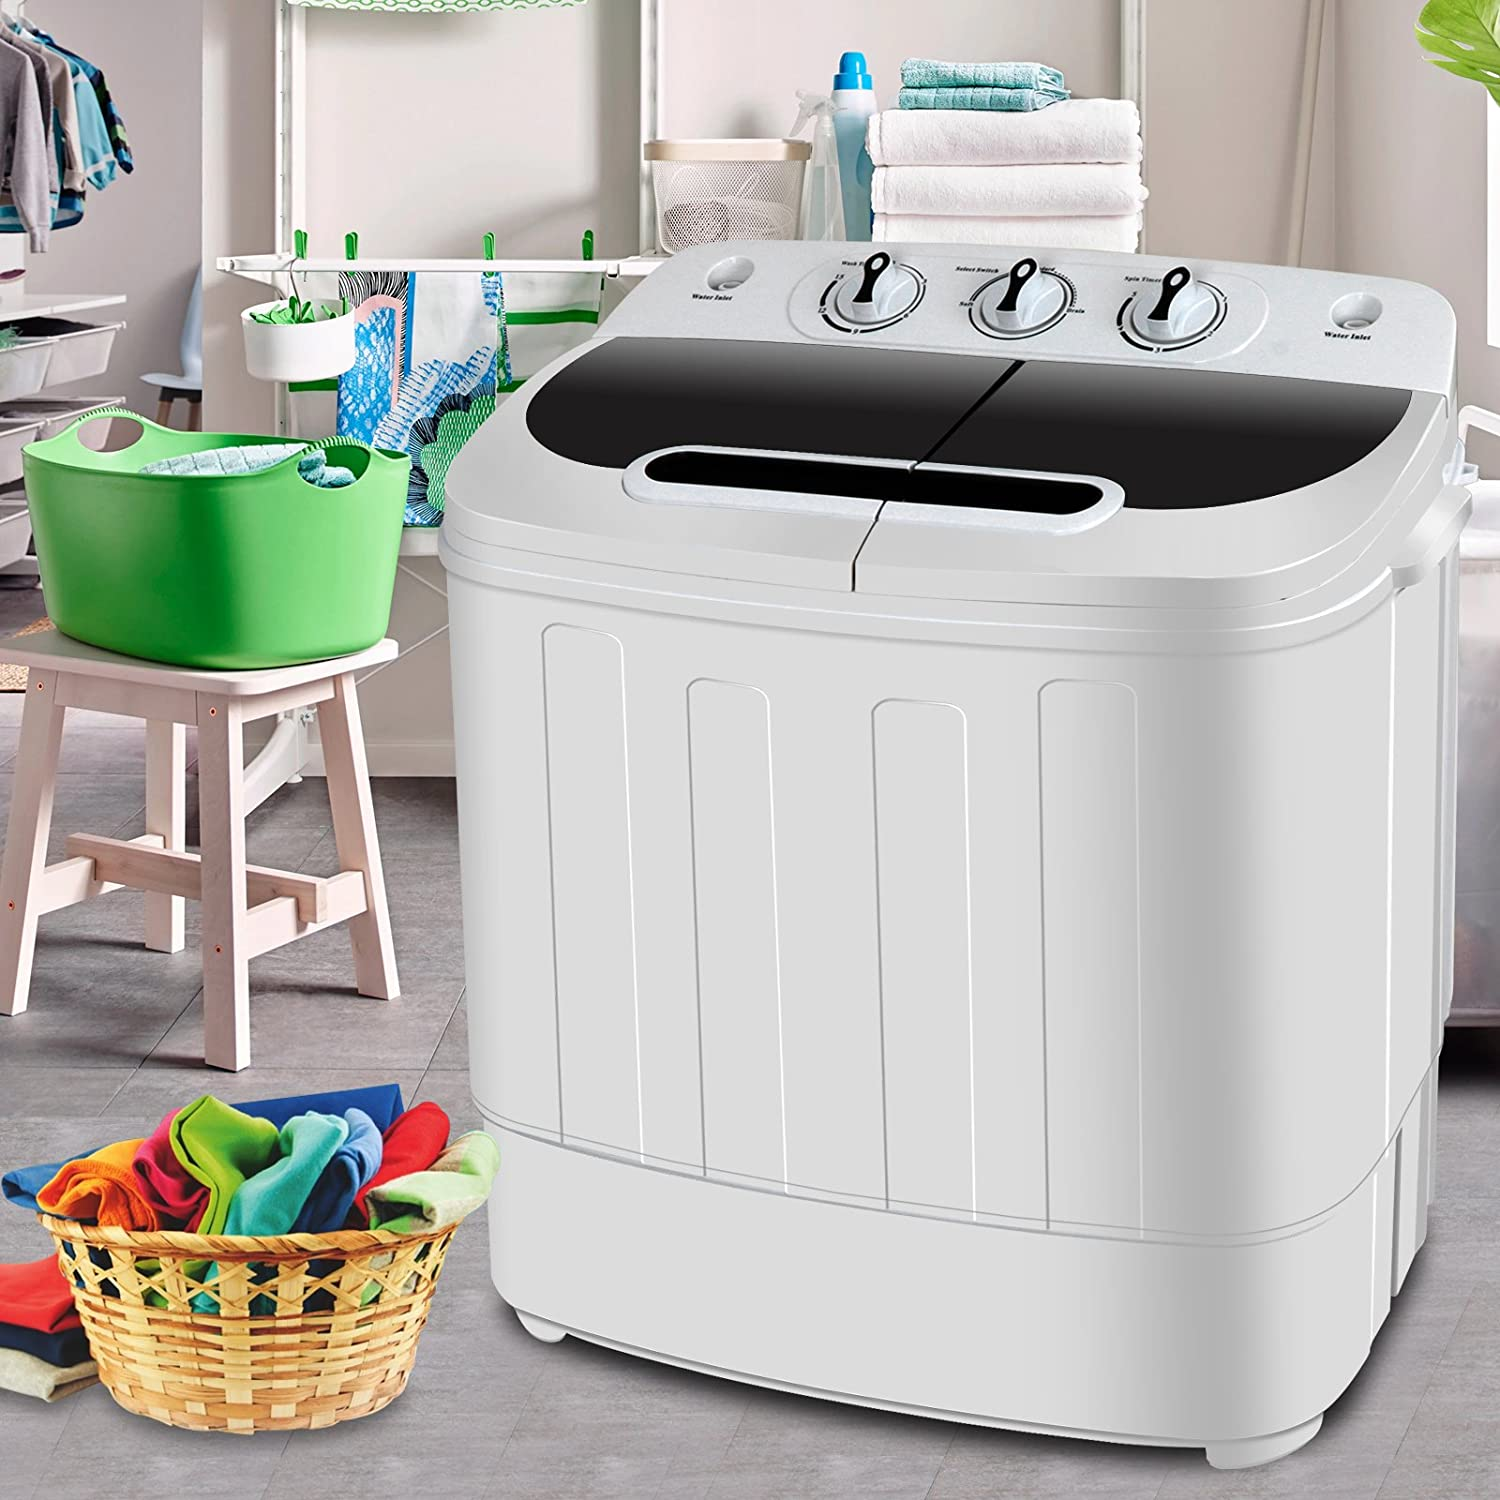 SUPER DEAL Portable Compact Mini Twin Tub Washing Machine w/Wash and Spin Cycle, Built-in Gravity Drain, 13lbs Capacity For Camping, Apartments, Dorms, College Rooms, RV